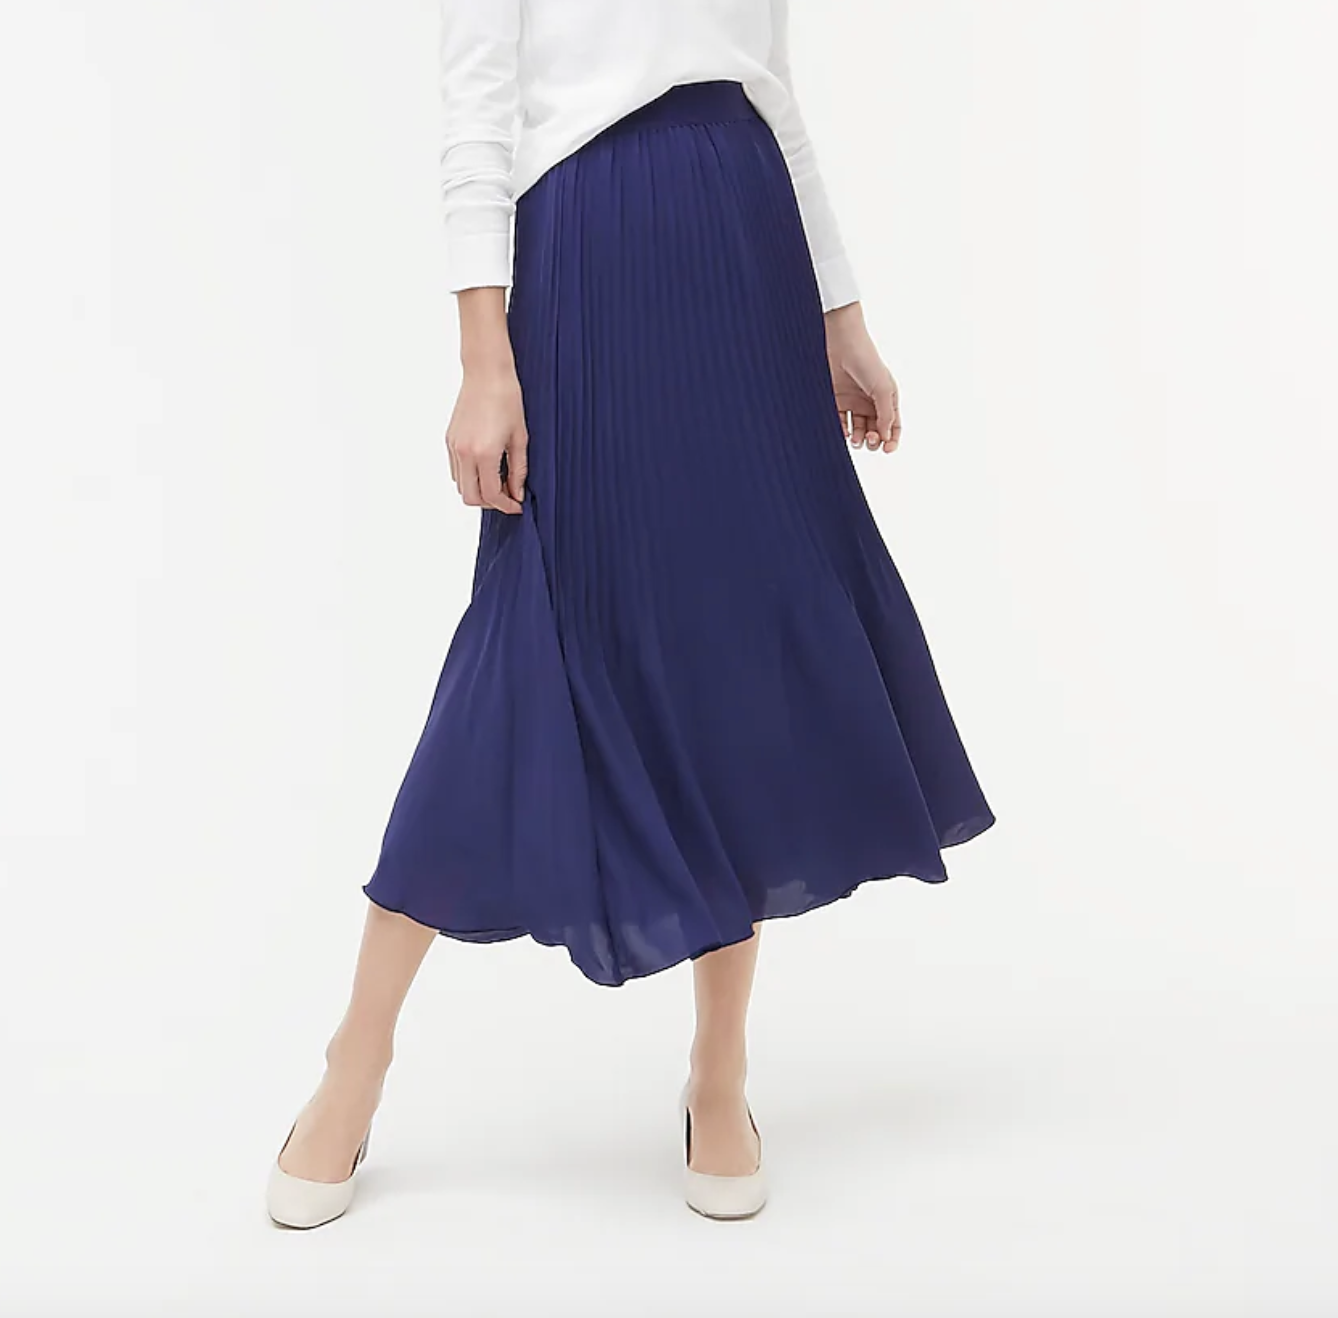 A model wearing the skirt in blue with a white long-sleeve top tucked into it and nude shoes